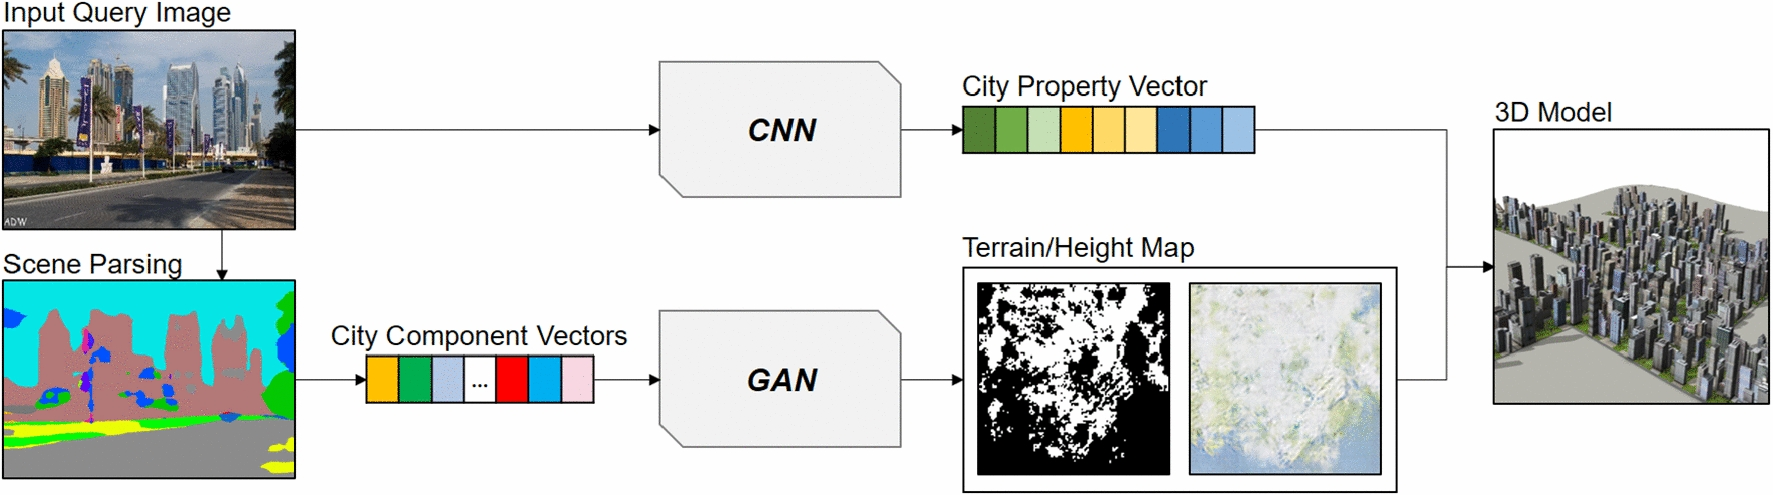 CityCraft: 3D virtual city creation from a single image | SpringerLink